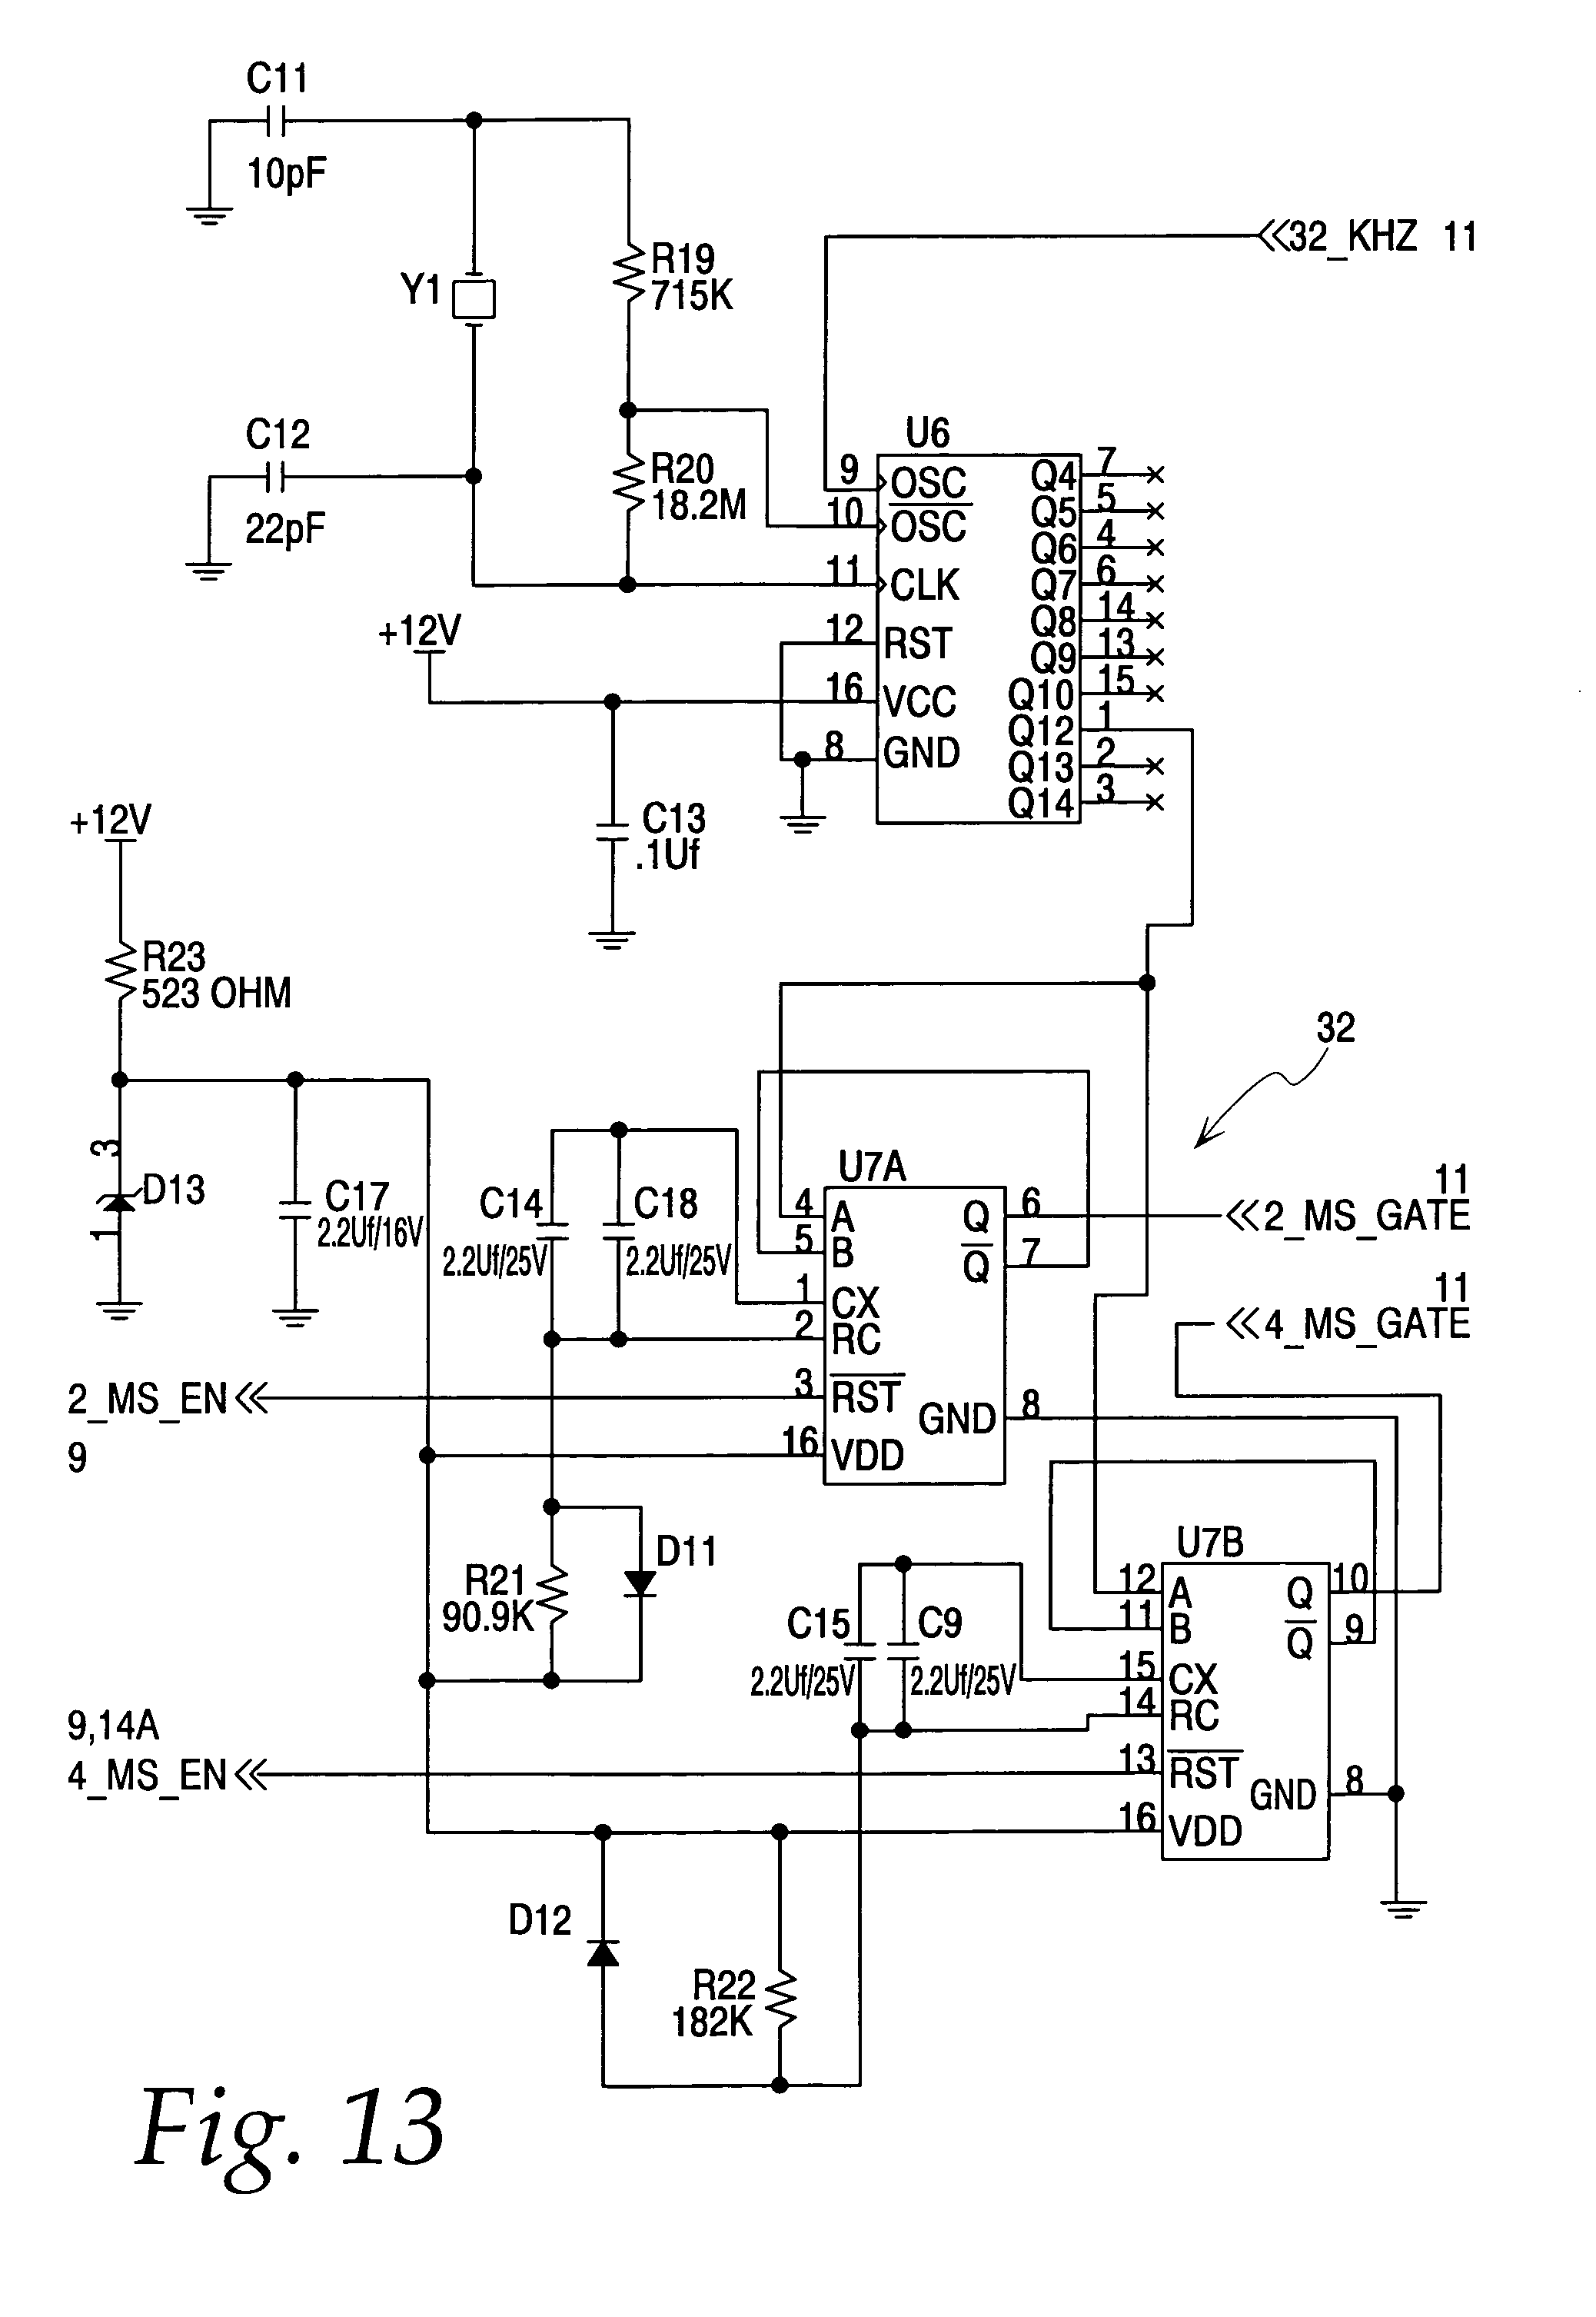 Wire Tracer Circuit Diagram 27 Wiring Images Continuity Tester Eeweb Community Us08351869 20130108 D00008 Patent Us8351869 Electric Google Patents At Highcare